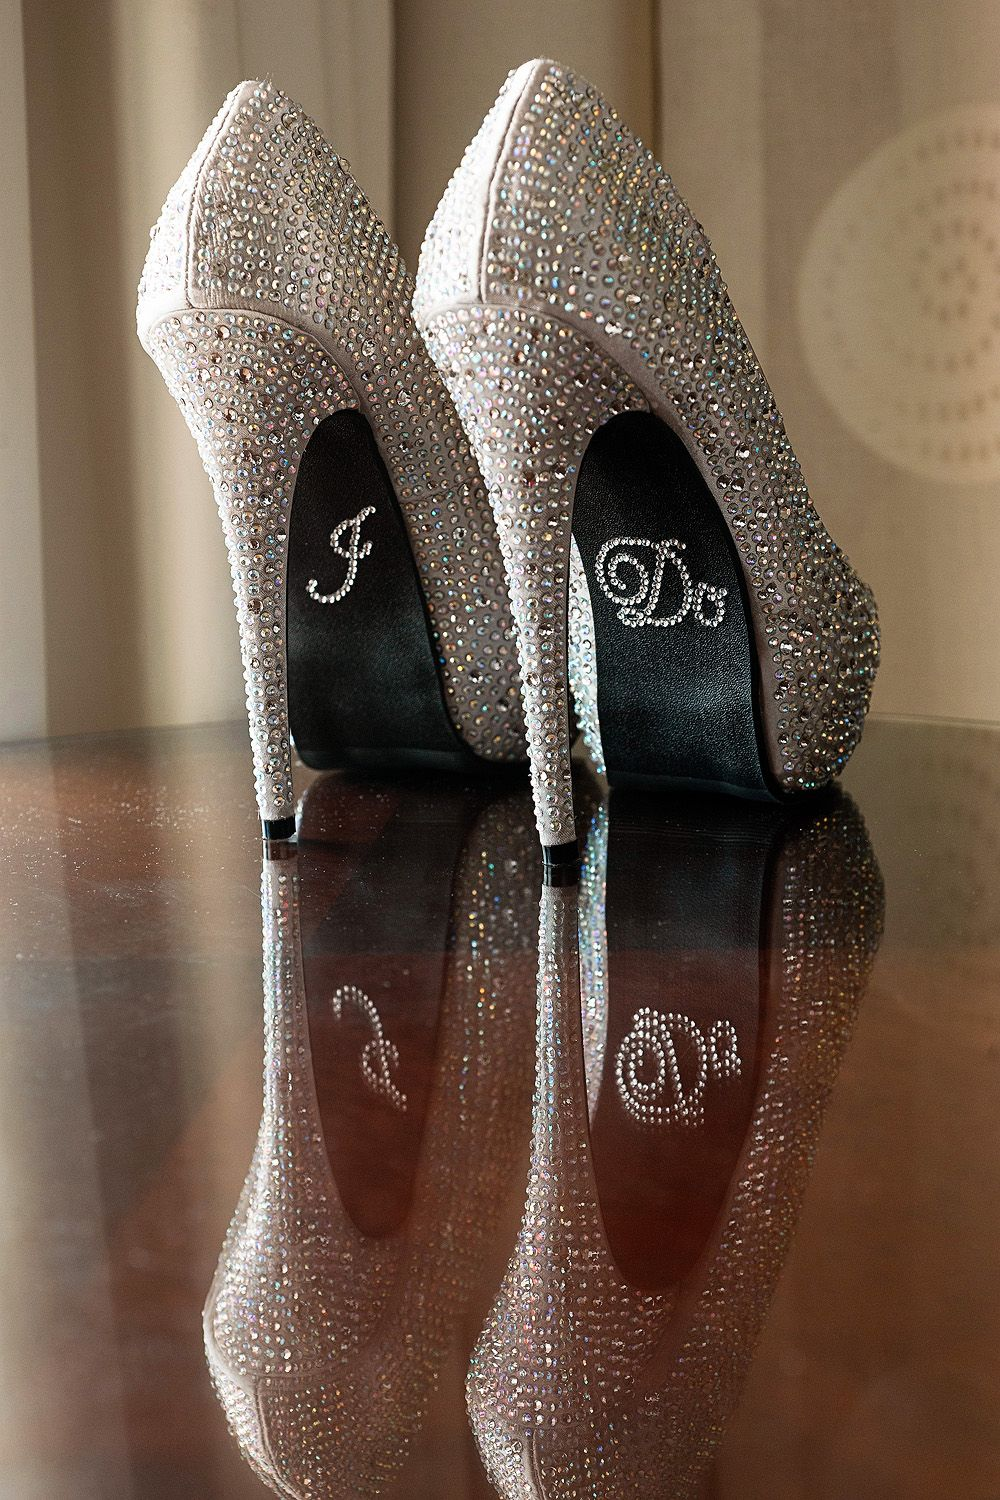 552225a7e8a A pair of blinged out heels are sure to stand out.